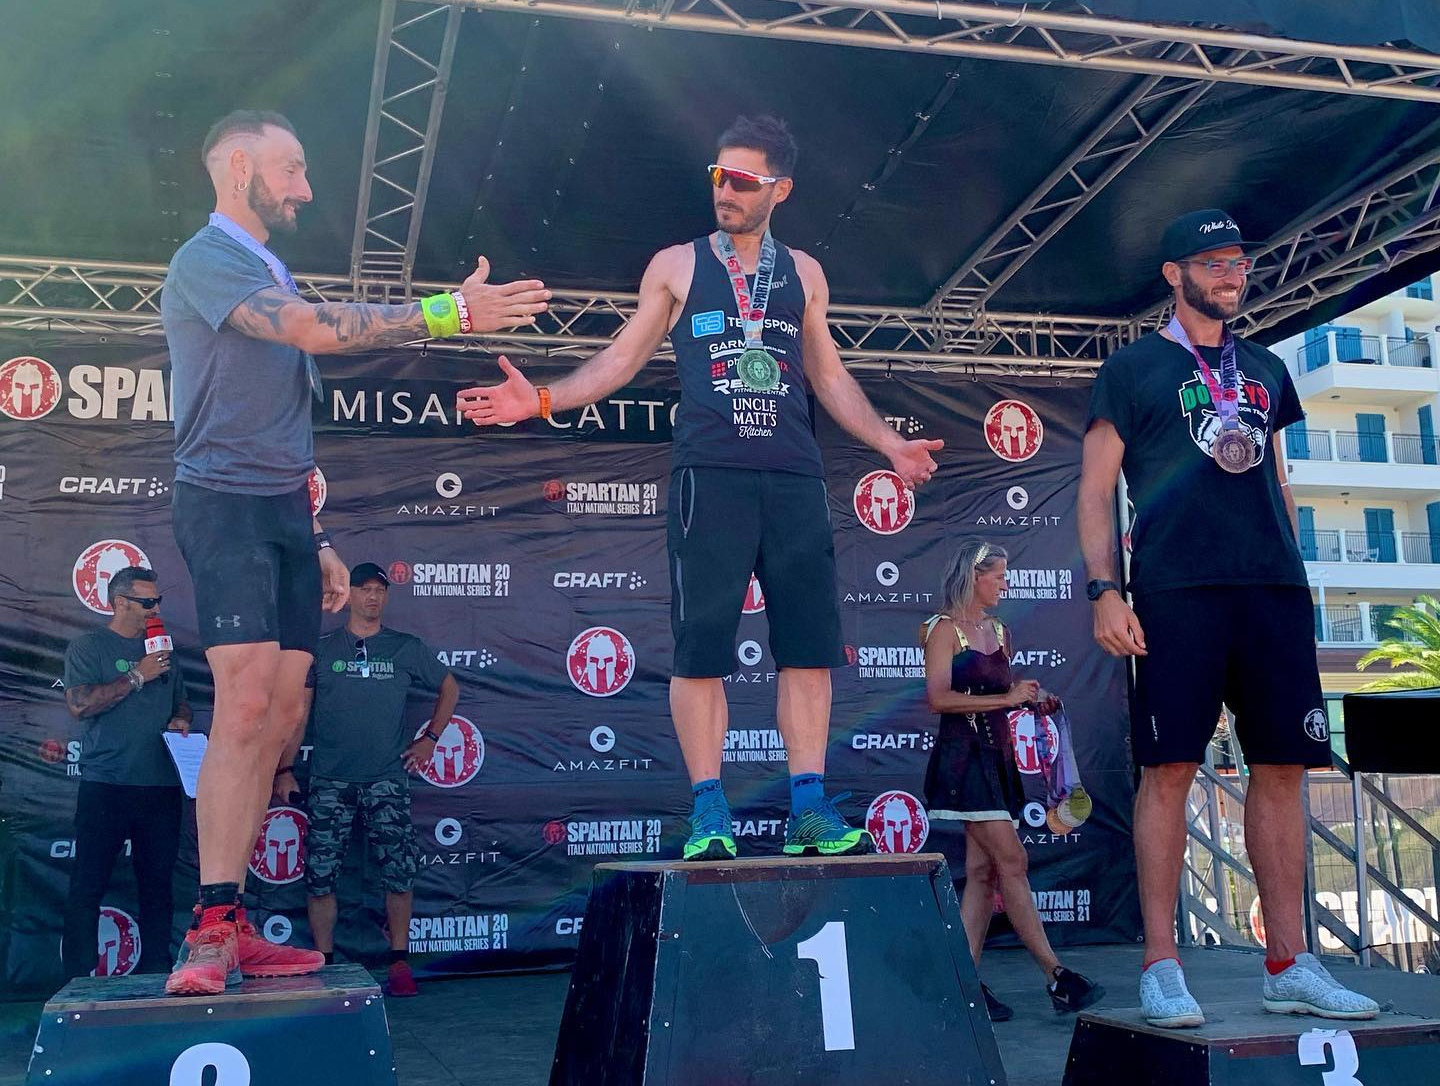 Read more about the article Local athlete flies Maltese flag at Spartan Race in Italy